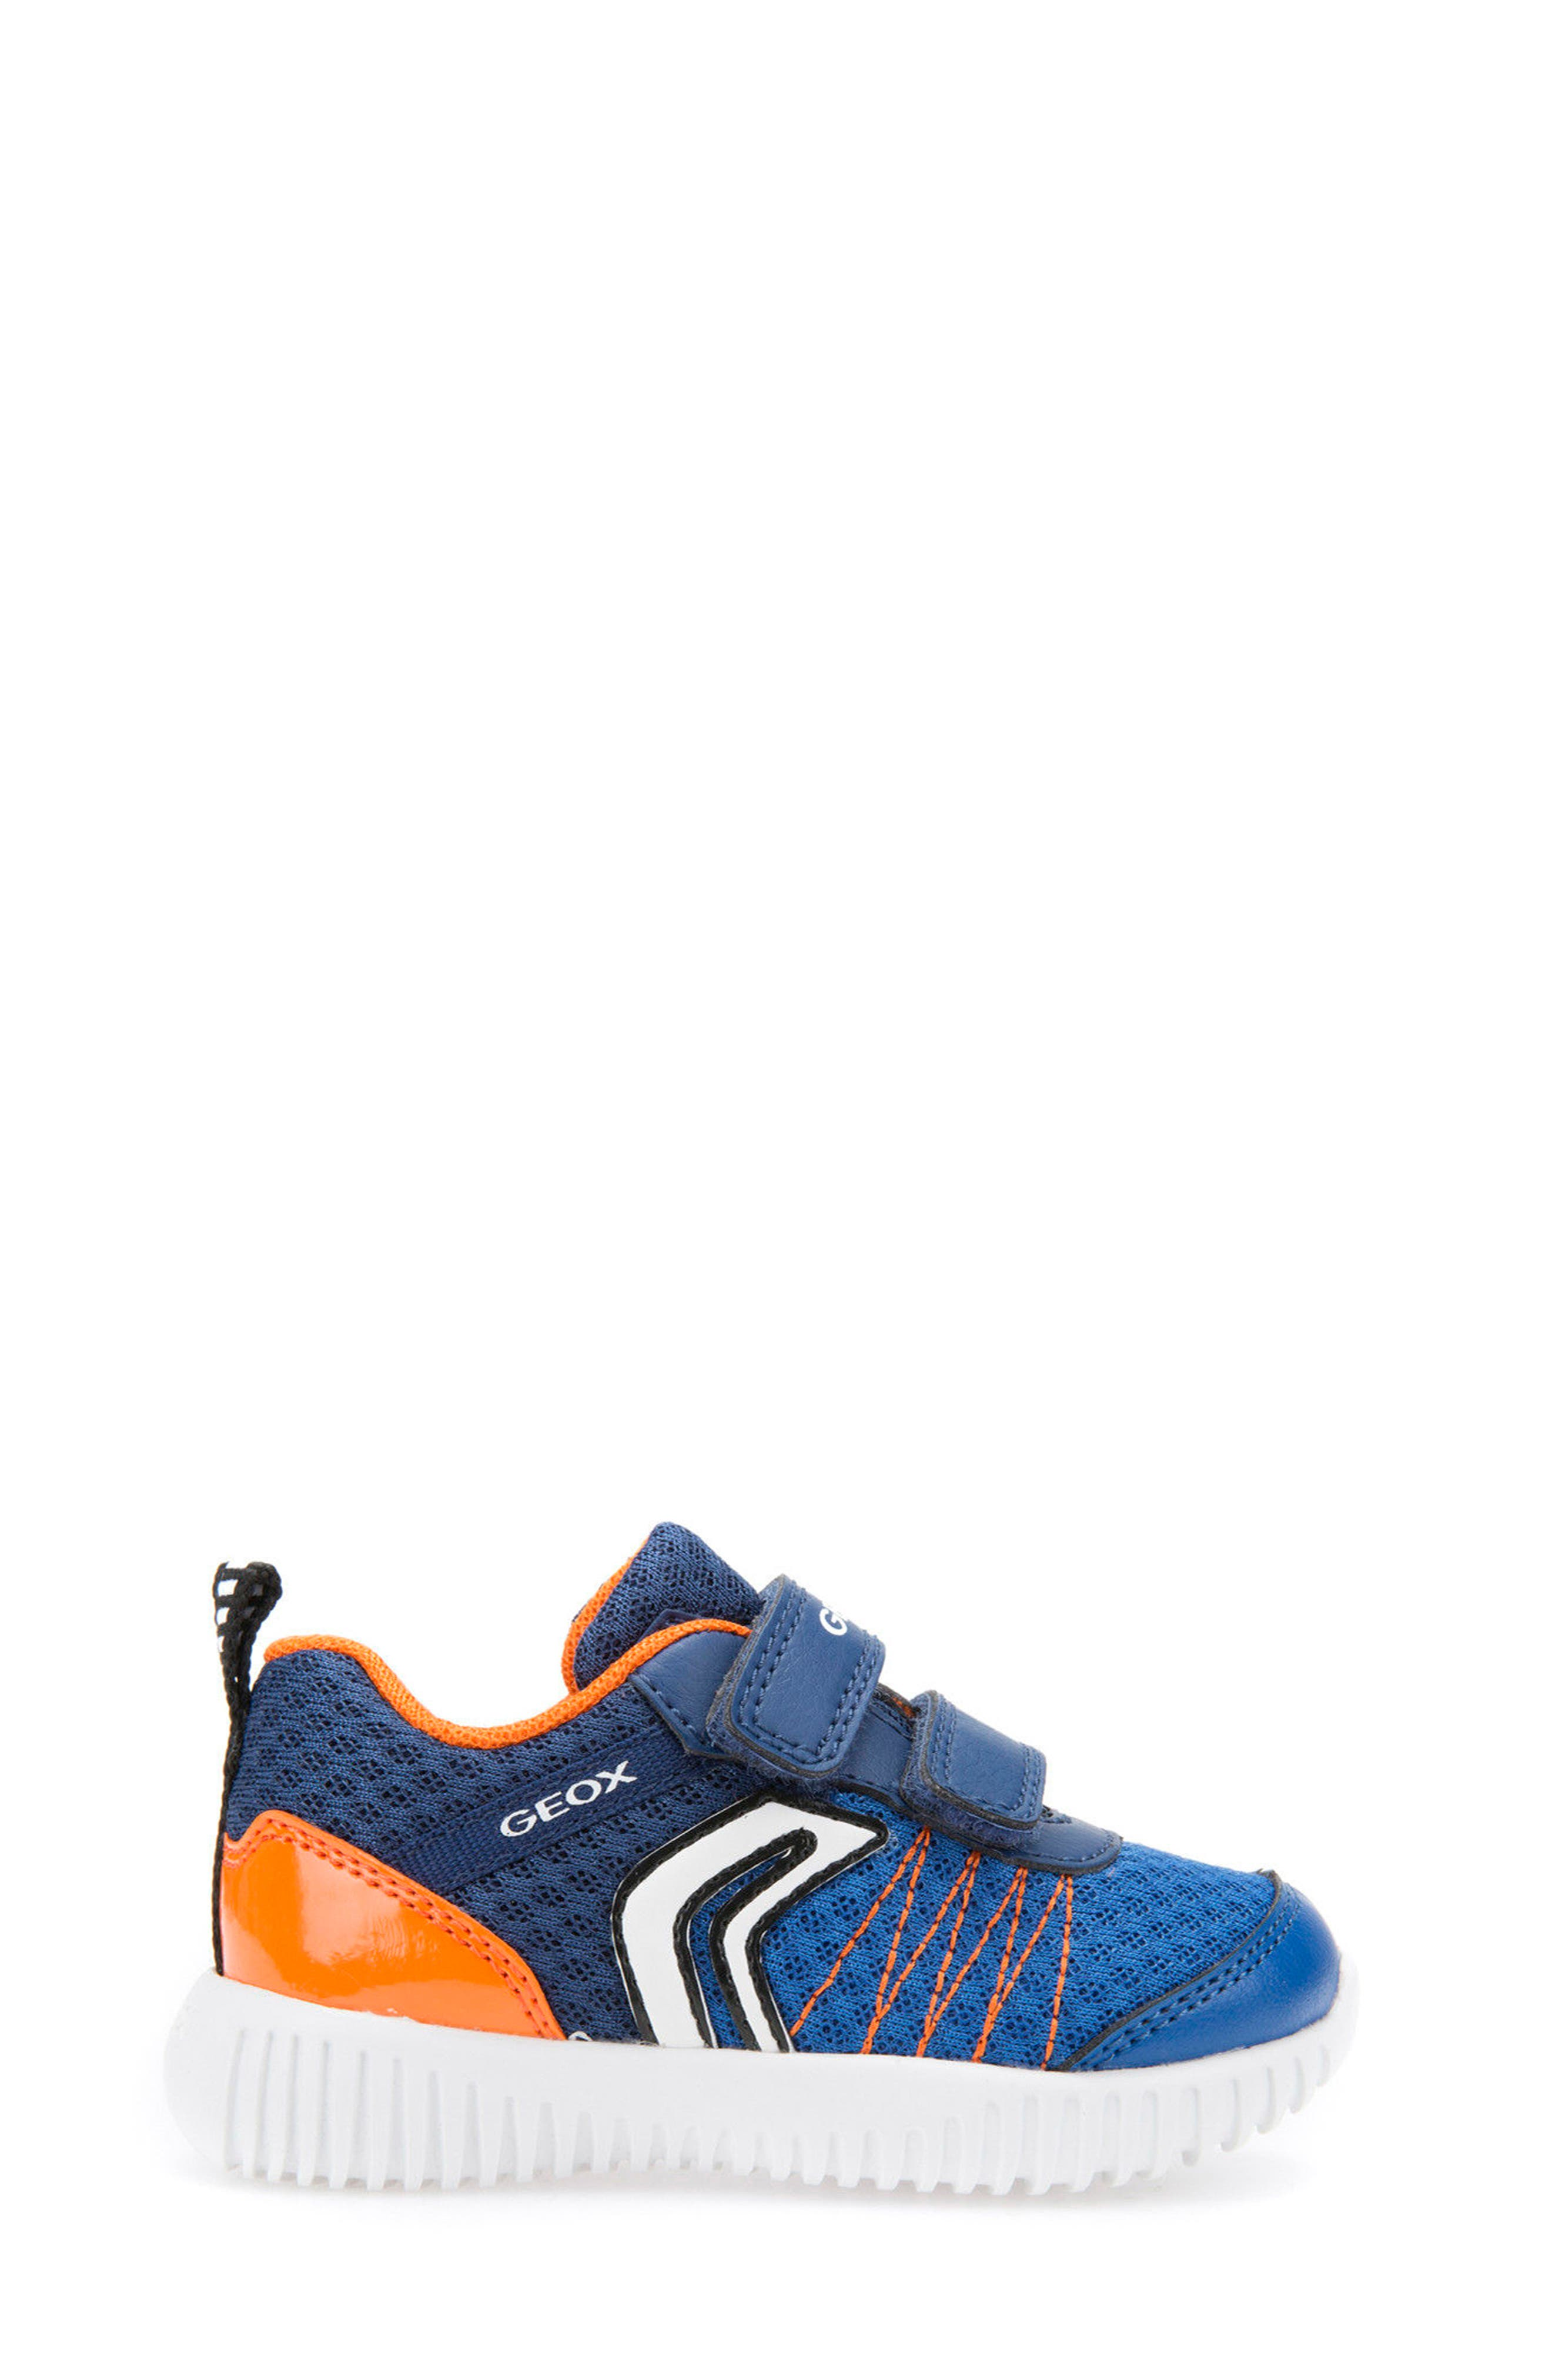 Waviness Waterproof Sneaker,                             Alternate thumbnail 3, color,                             NAVY/ ORANGE